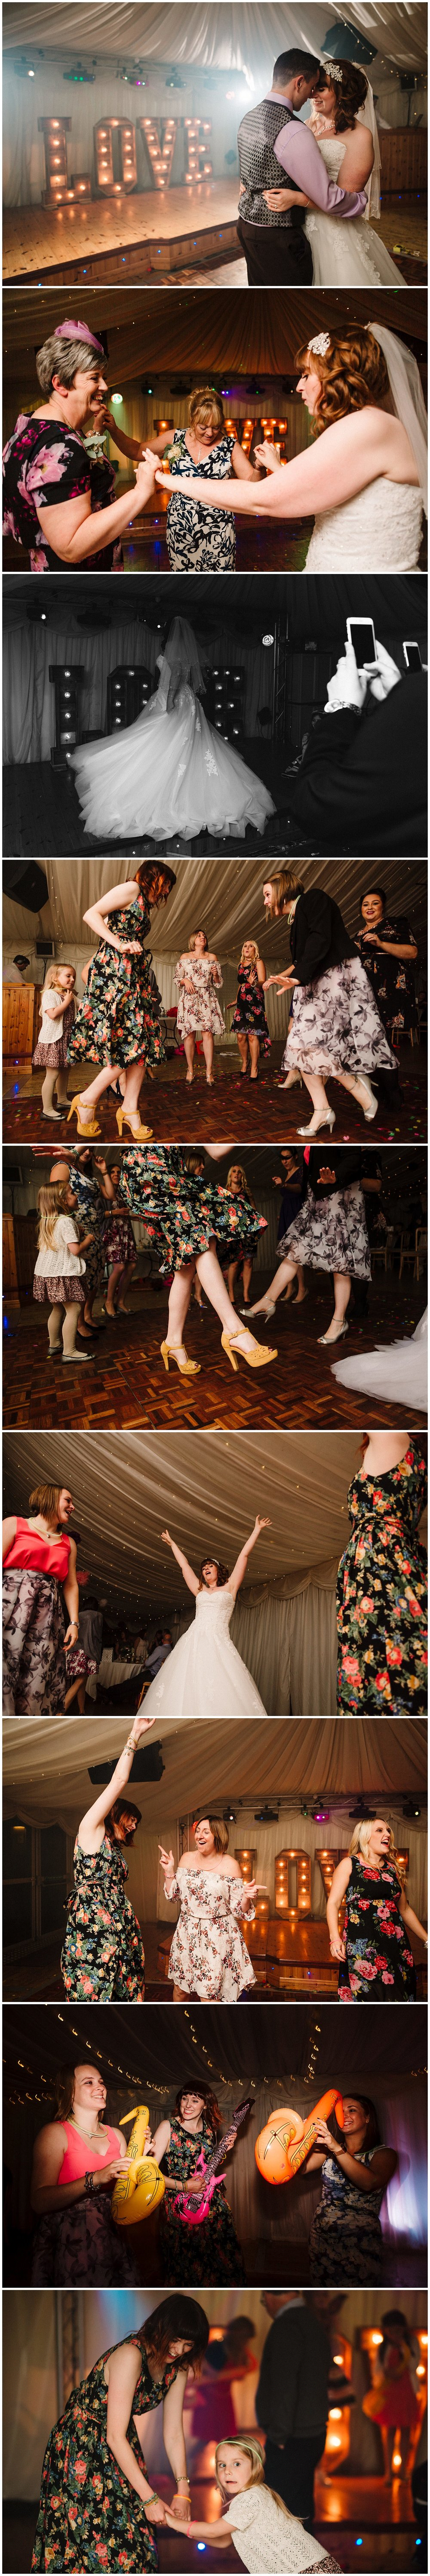 documentary wedding photography on a wedding dance floor in yorkshire